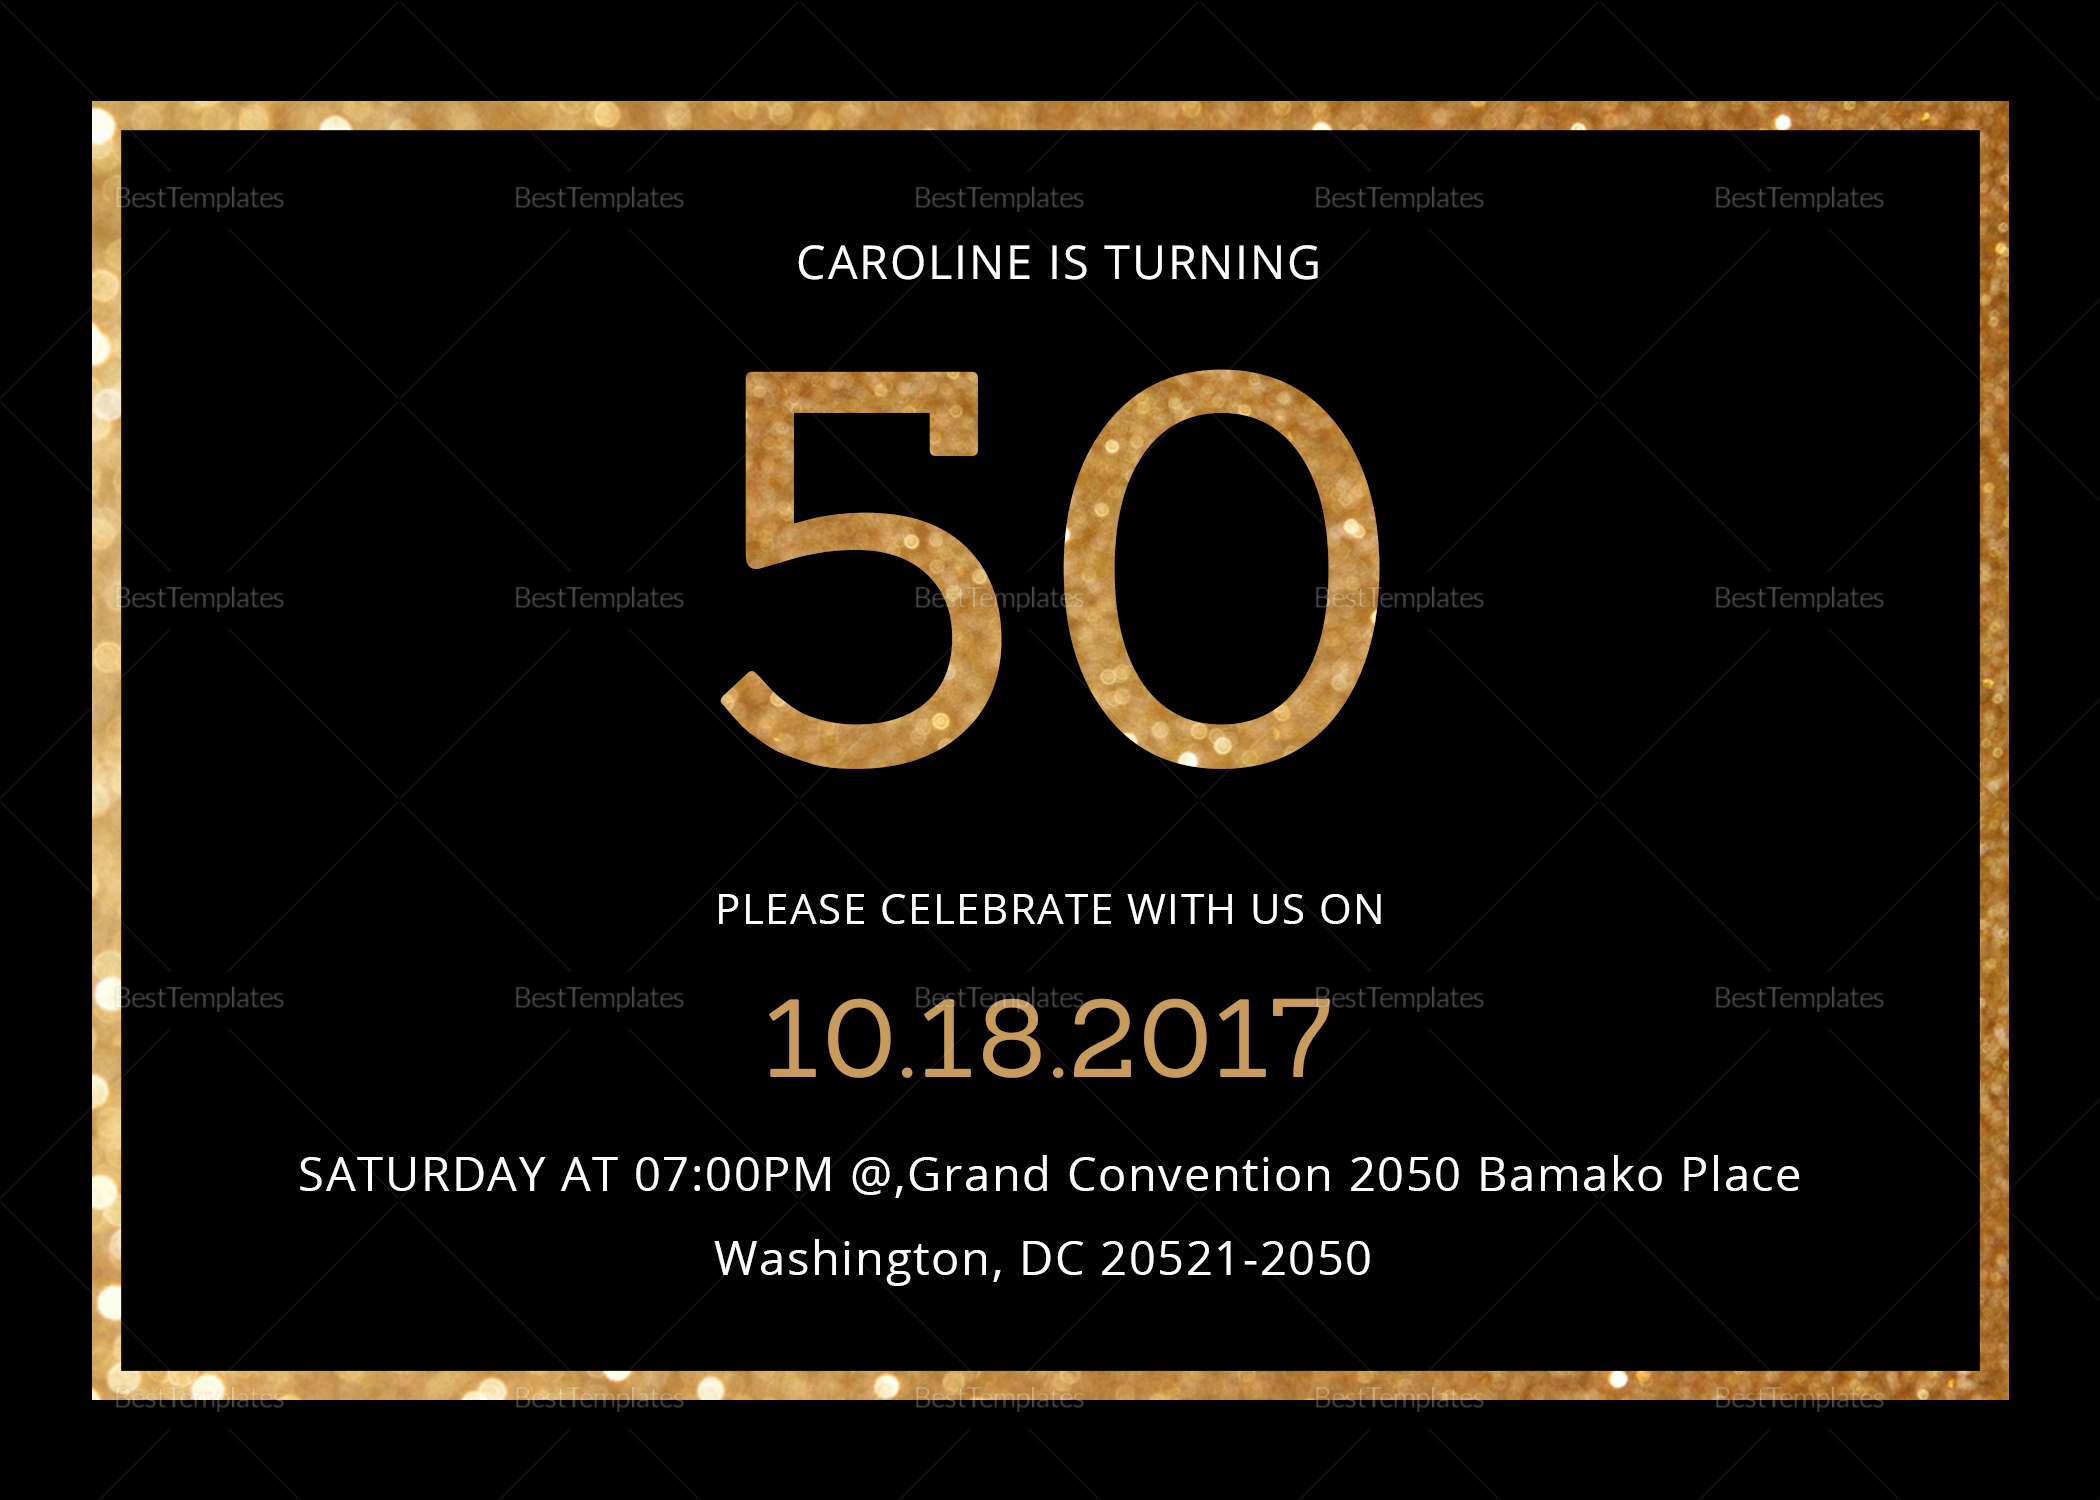 50th Birthday Invitation Templates Unique Elegant Black and Gold 50th Birthday Invitation Design